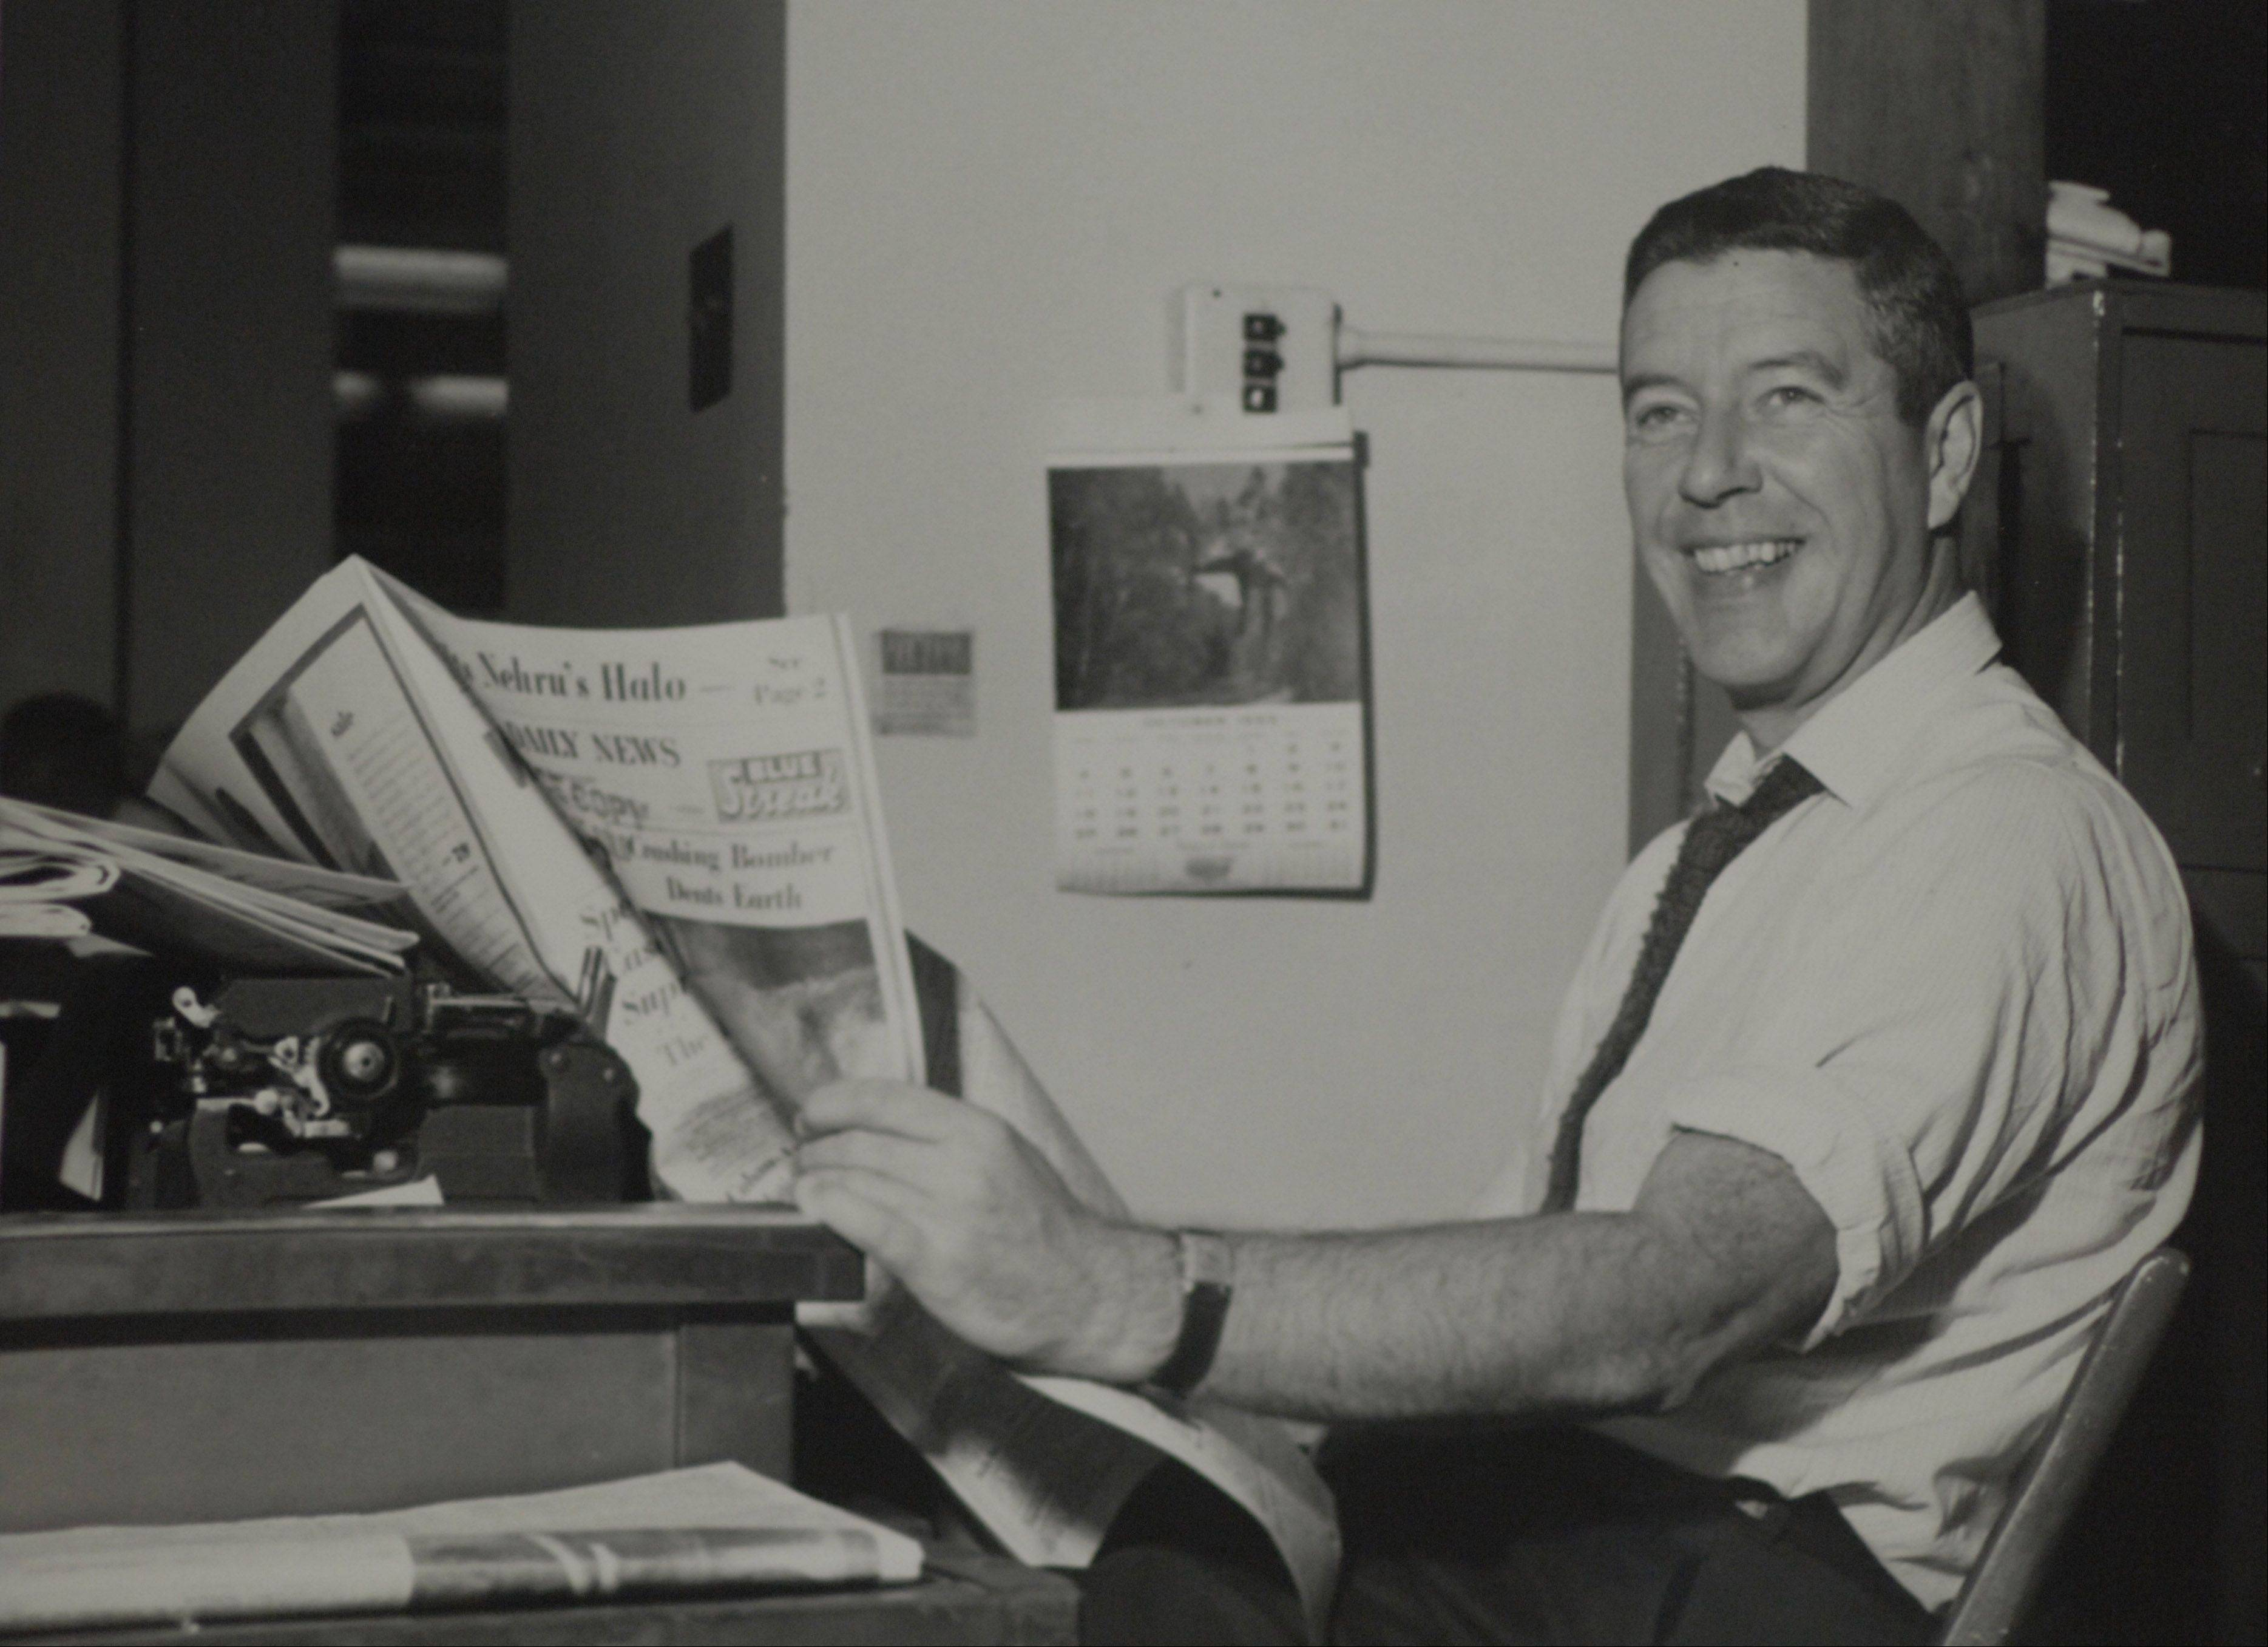 Shown here holding a copy of the Chicago Daily News, columnist Jack Mabley wrote so many important stories that his work has been included in a 125th anniversary exhibit at Chicago's famed Newberry library.